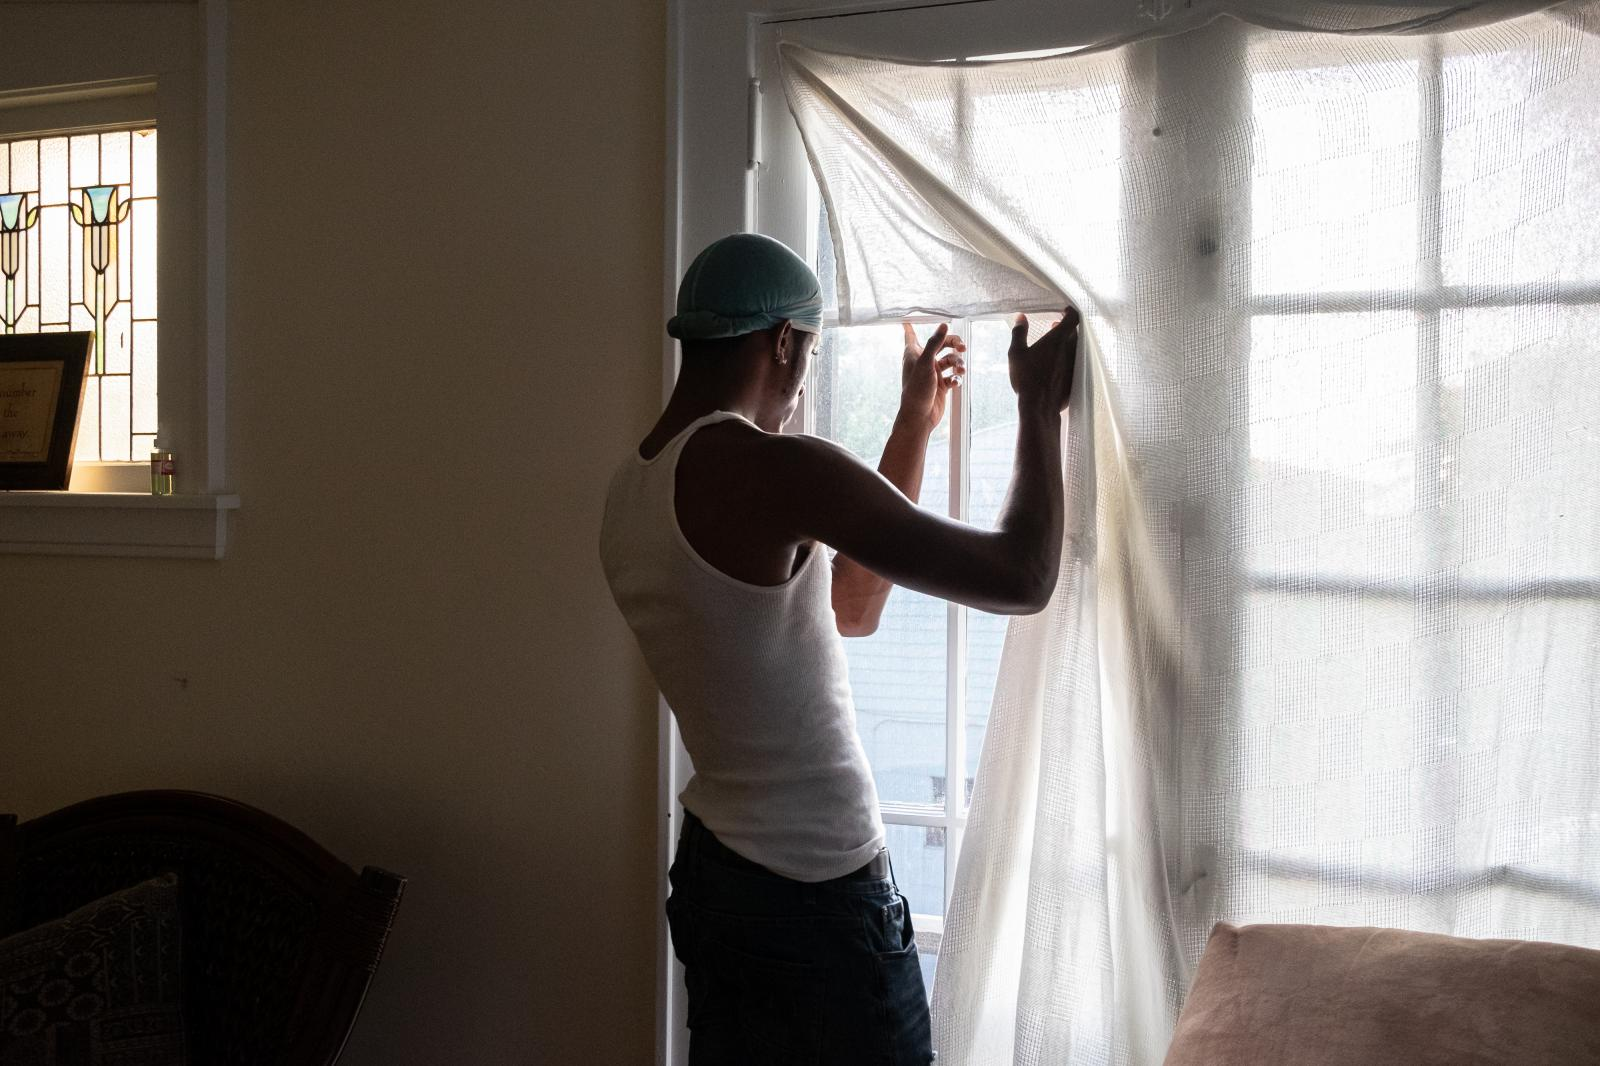 Blair Seals, 20, native of Syracuse, New York looks out the window of the apartment he shares with his brother.